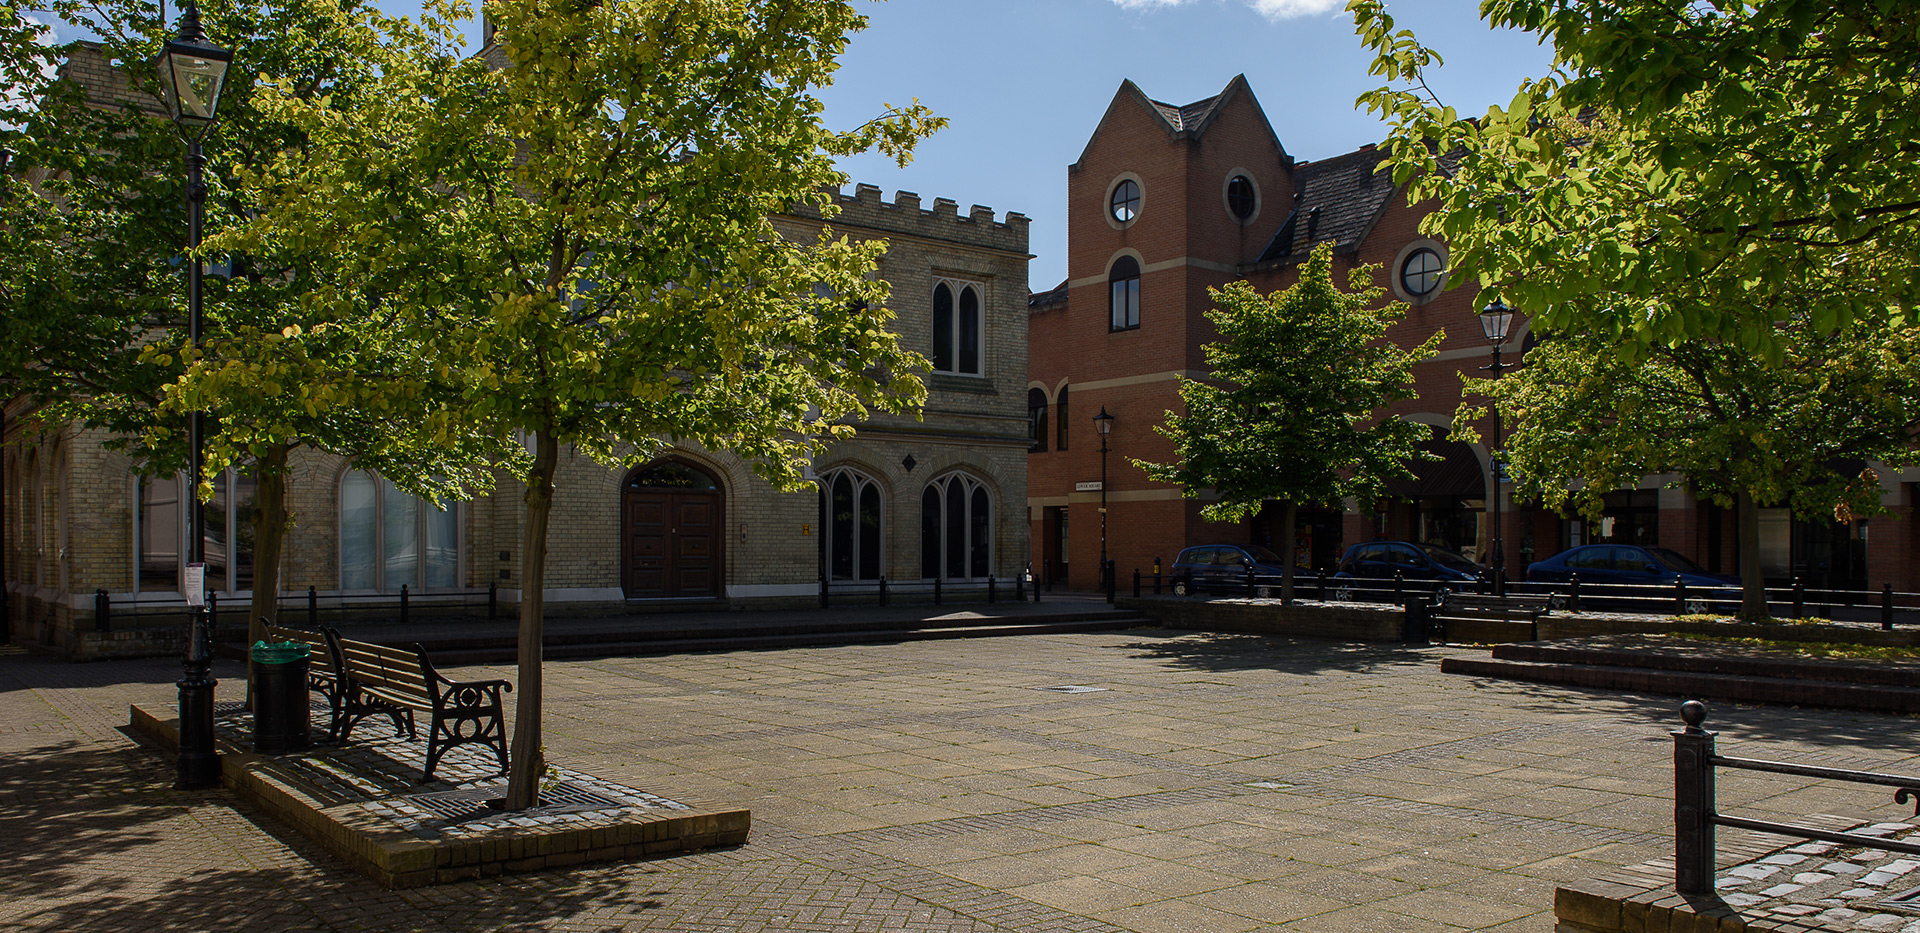 St James, Fitzroy Gate, Isle lower square